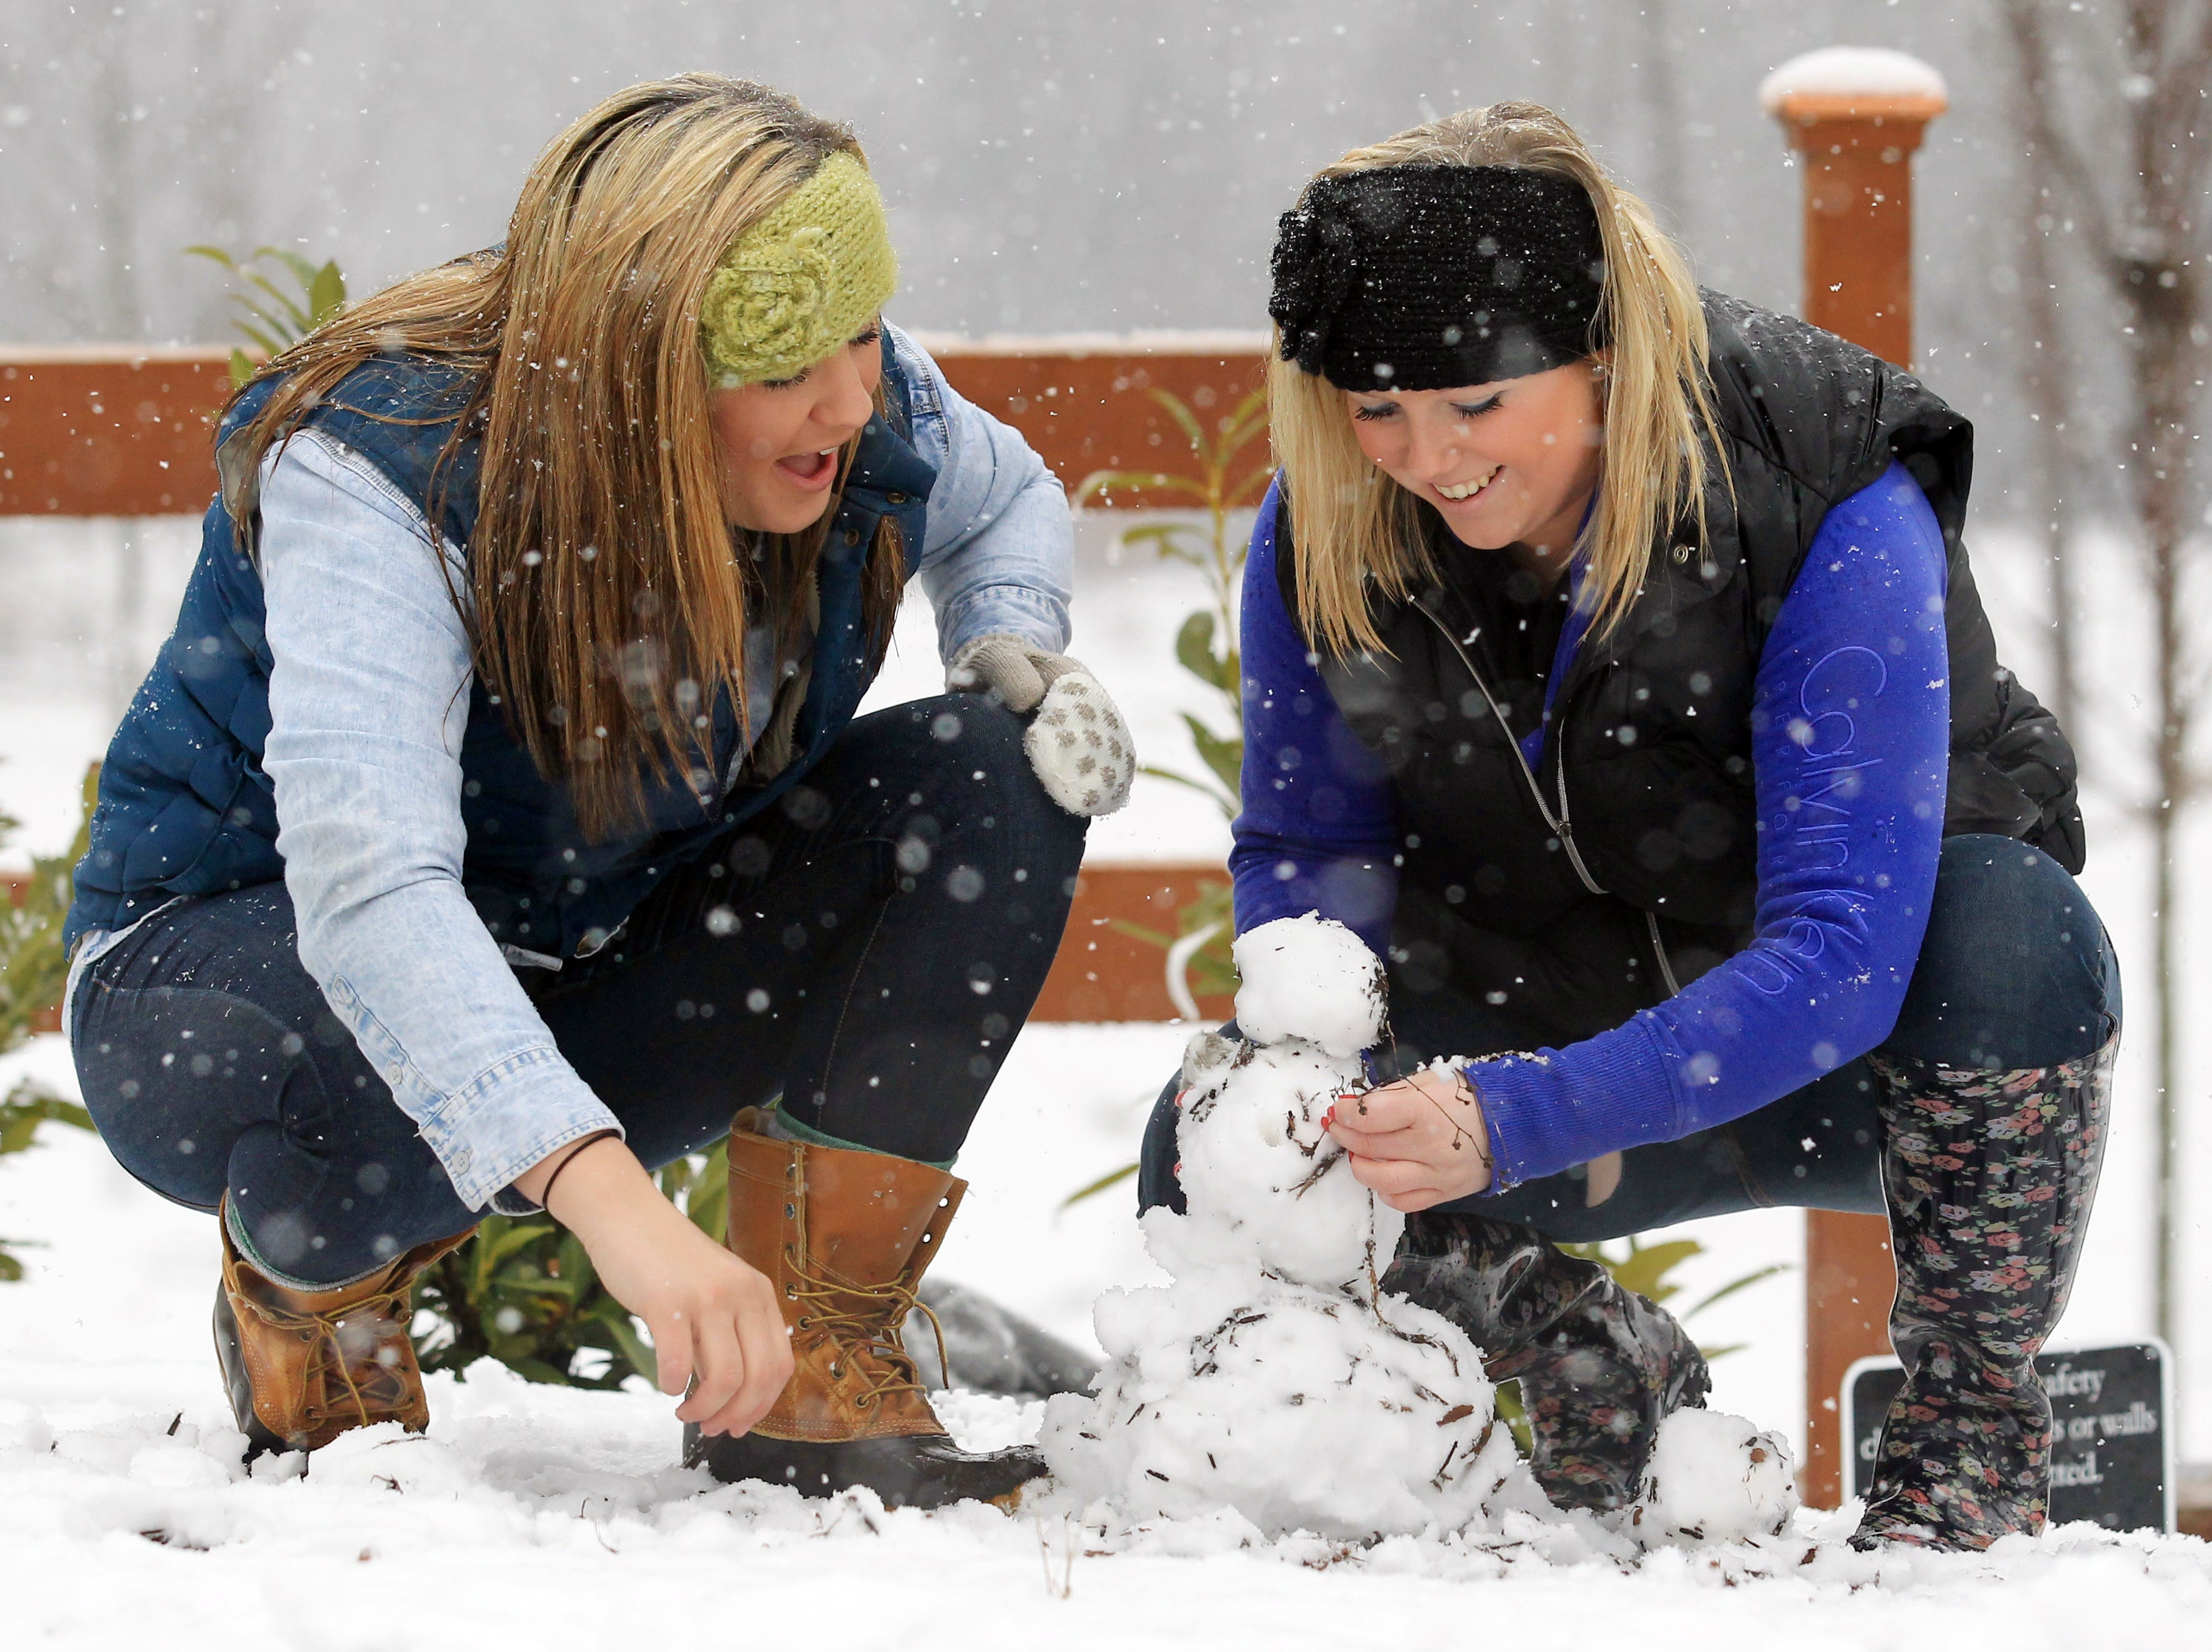 Anderson University students Madison Smith, right, of Powdersville, and Remi Jordan, of Anderson, make a small snowman in Linley Park on Tuesday February 11, 2014.